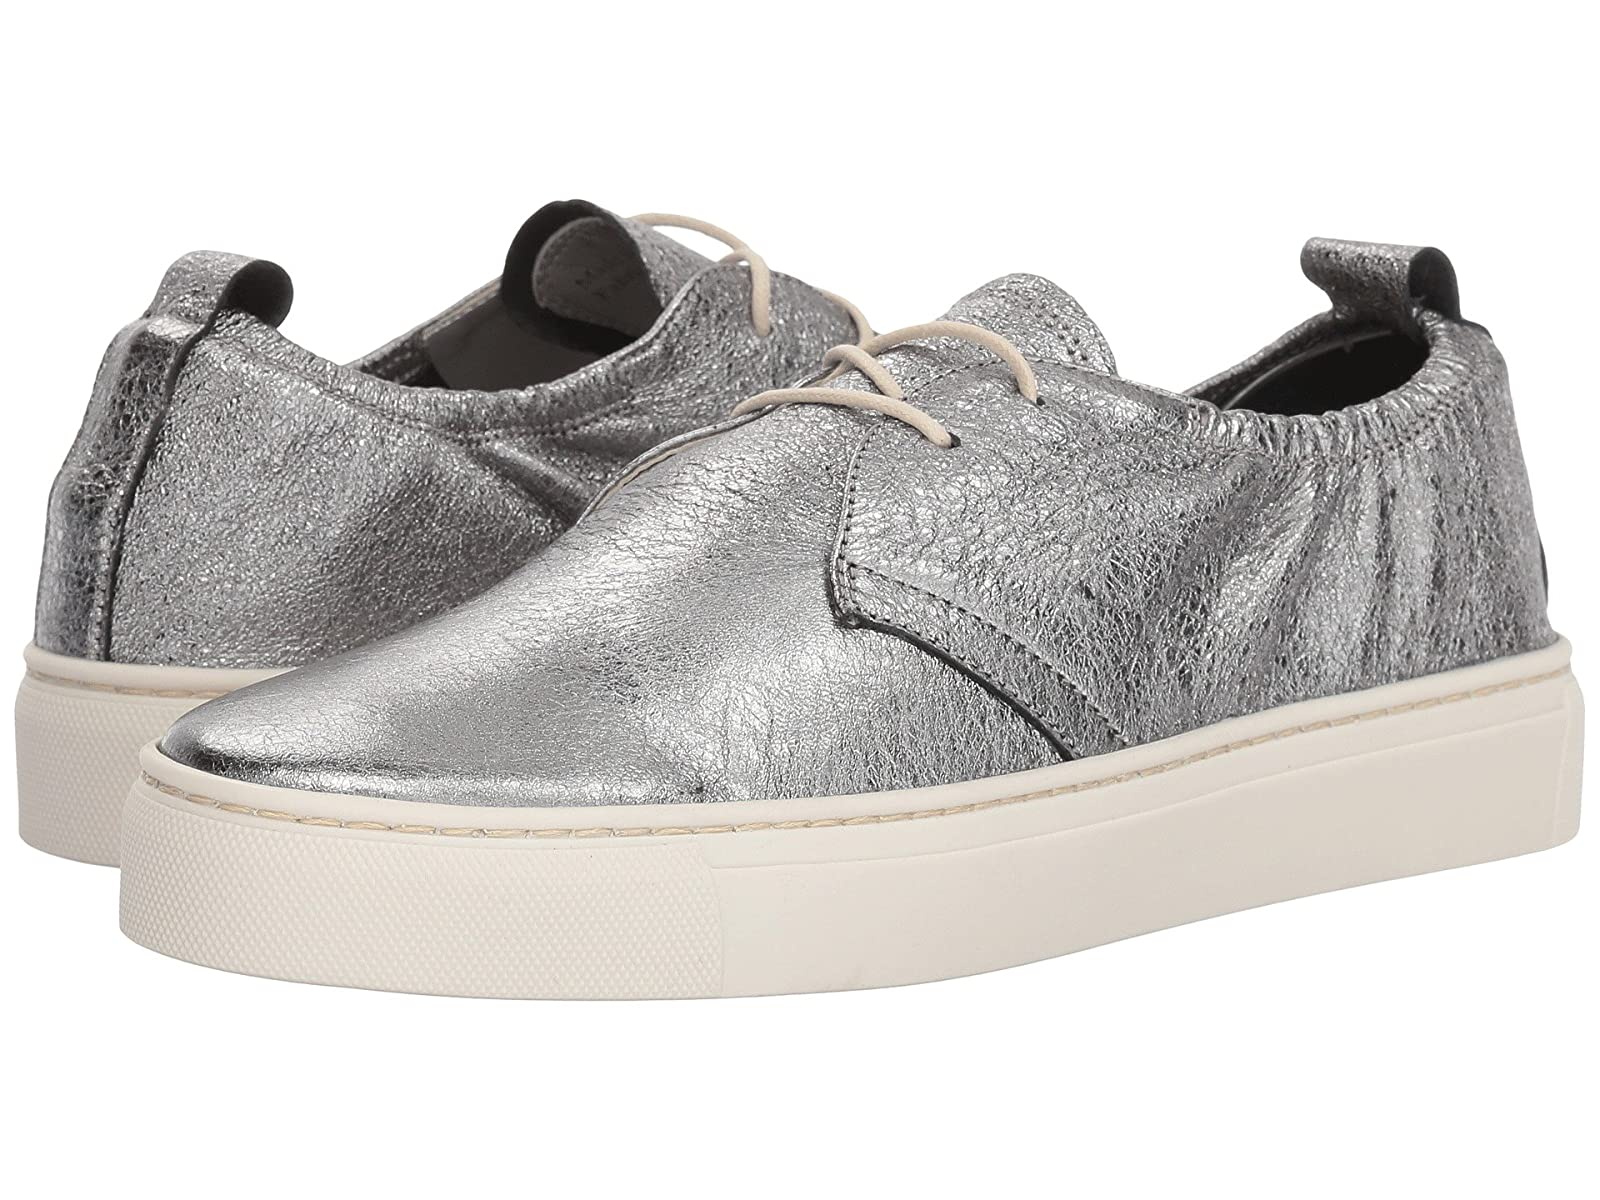 The FLEXX Sneak UpAtmospheric grades have affordable shoes